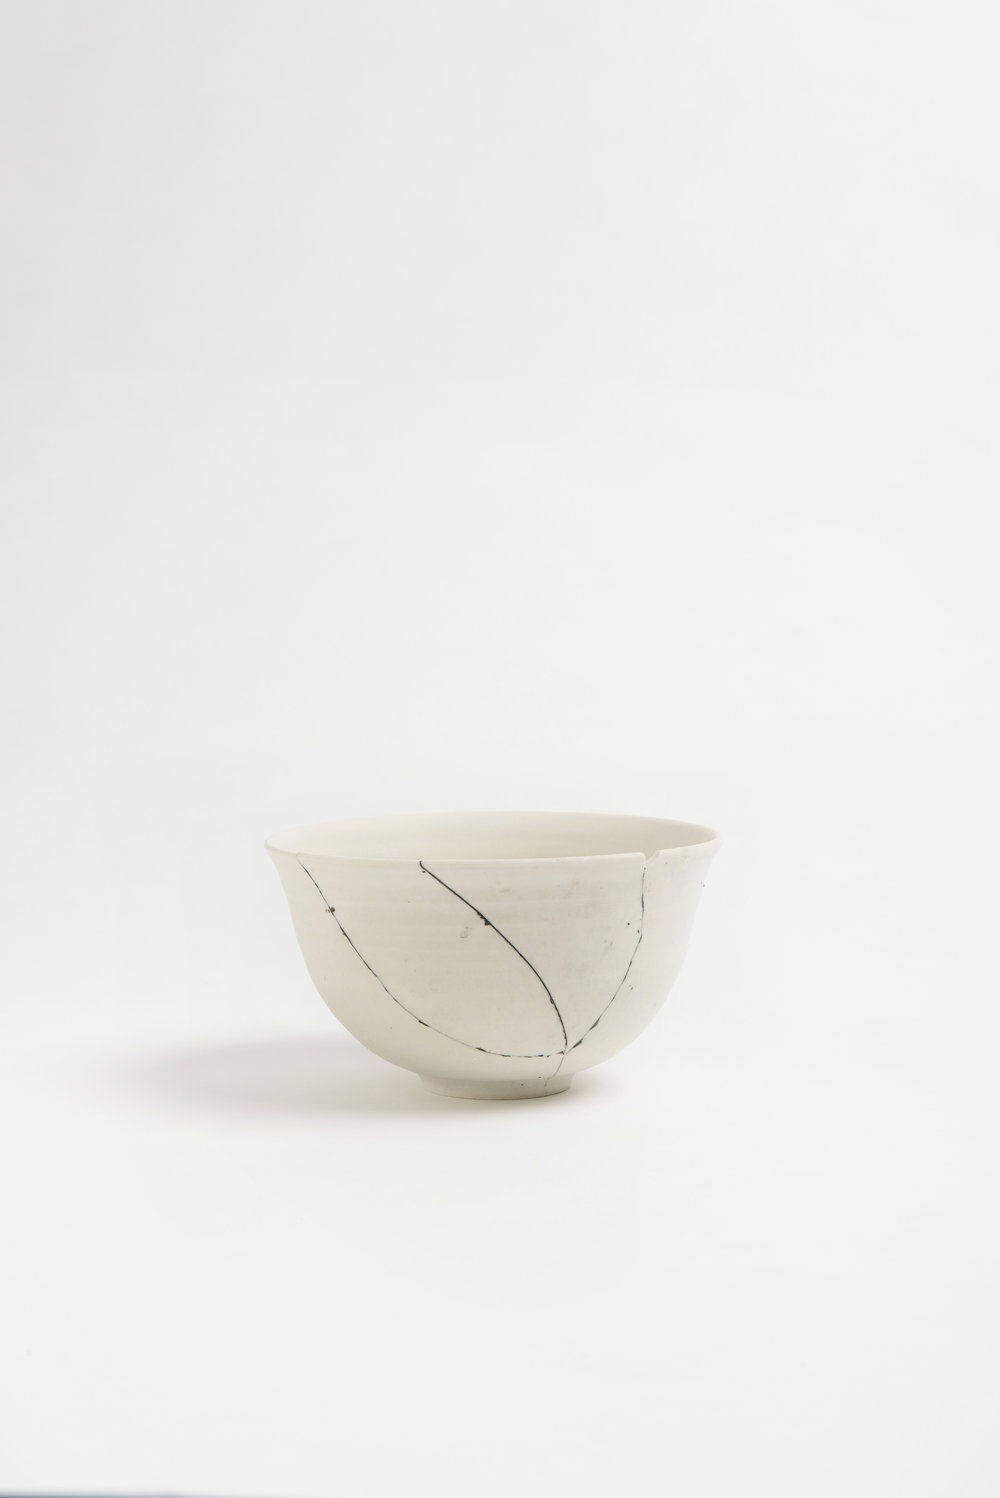 white-fracture-series-bowl-romy-northover-ceramics-the-garnered-10.jpg